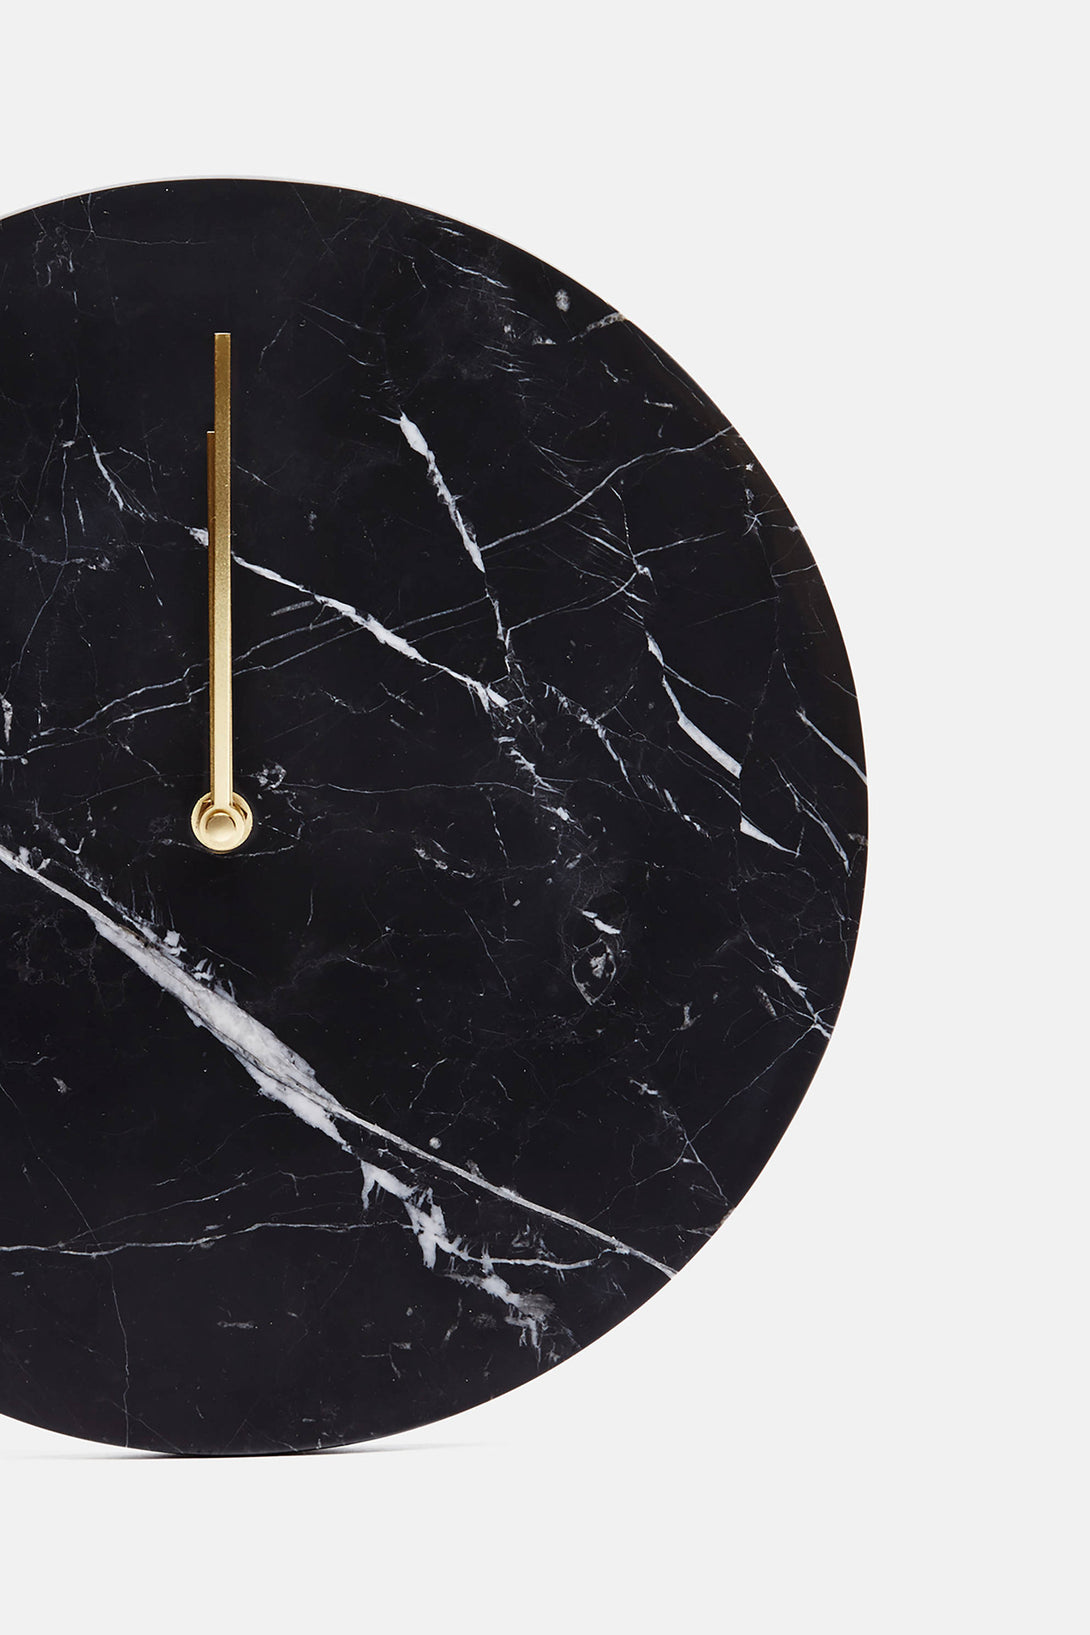 Black Marble Wall Clock with Brass Hands The Line